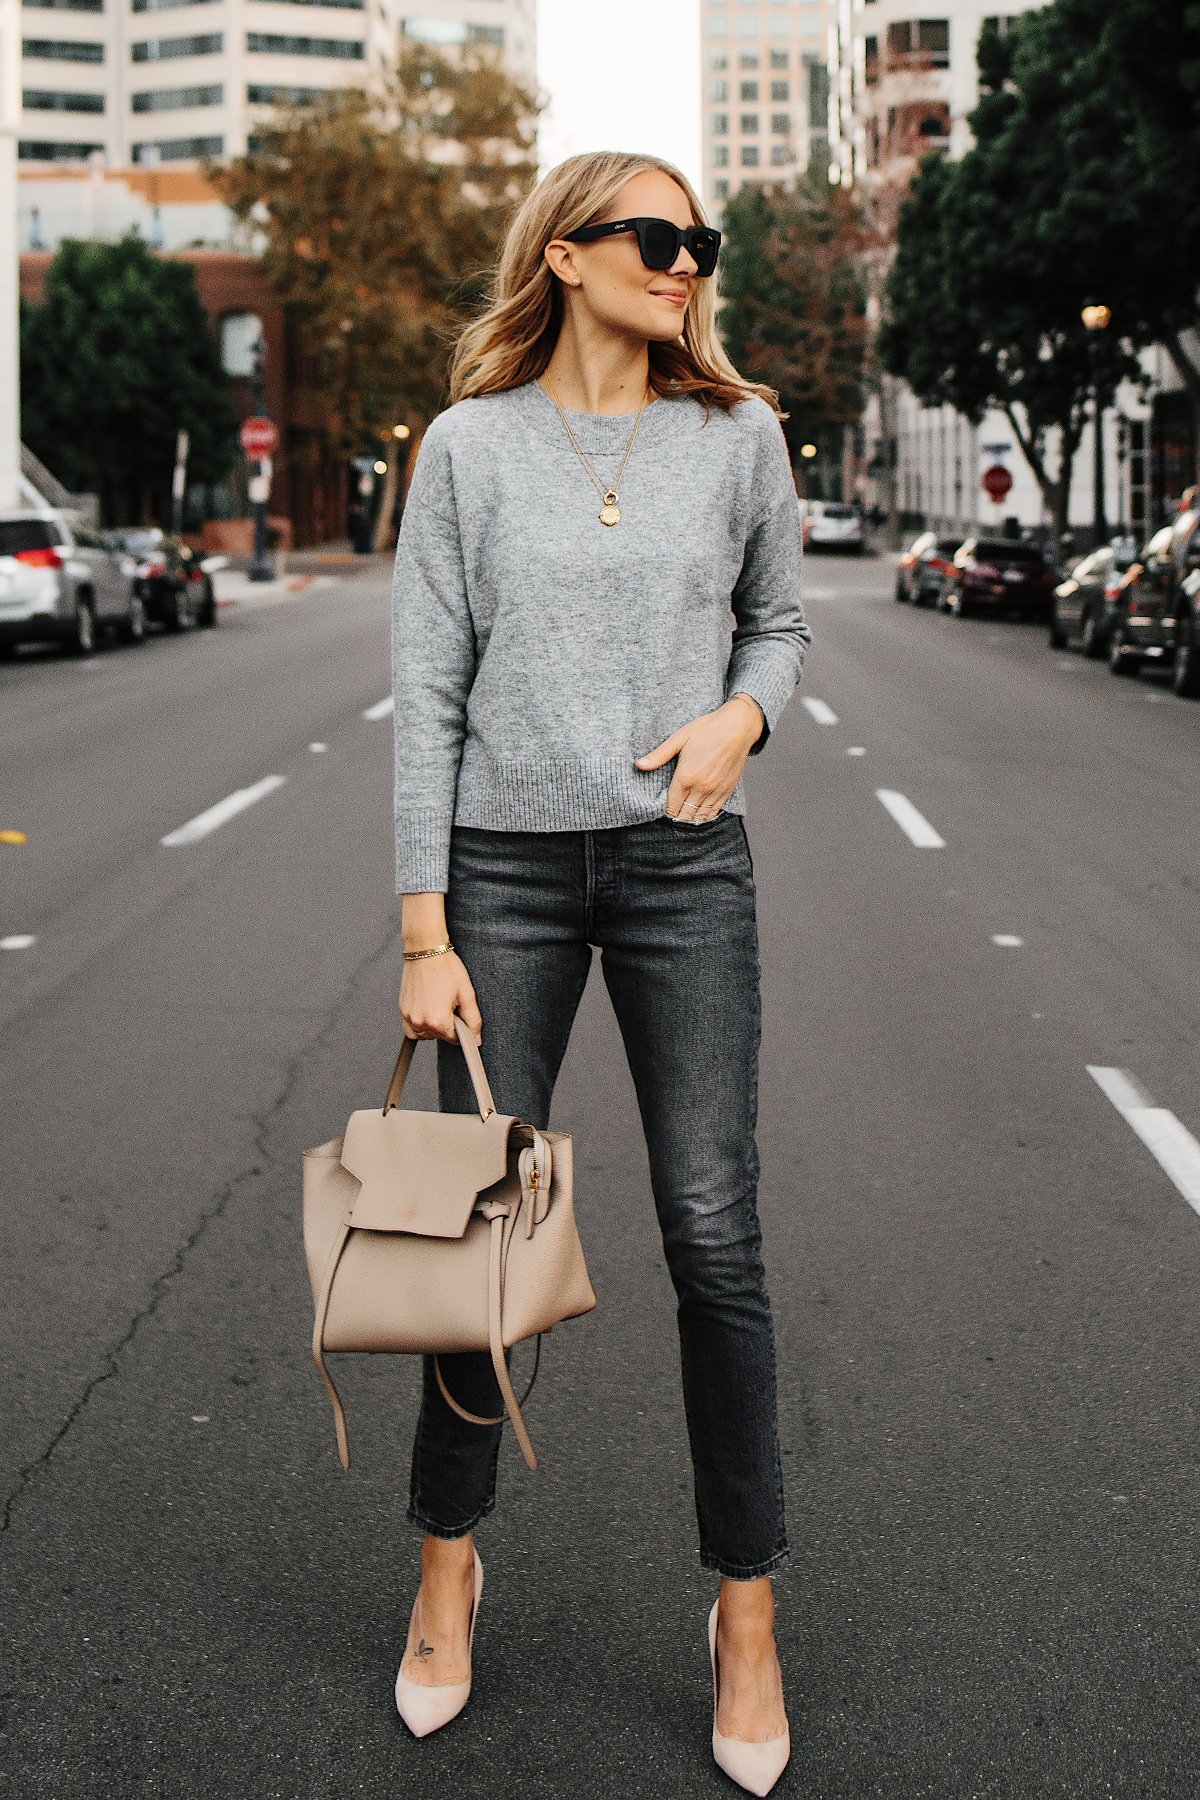 Blonde Woman Wearing Oversized Grey Sweater Levis 501 Grey High Waist Skinny Jeans Nude Pumps Celine Mini Belt Bag Fashion Jackson San Diego Fashion Blogger Street Style